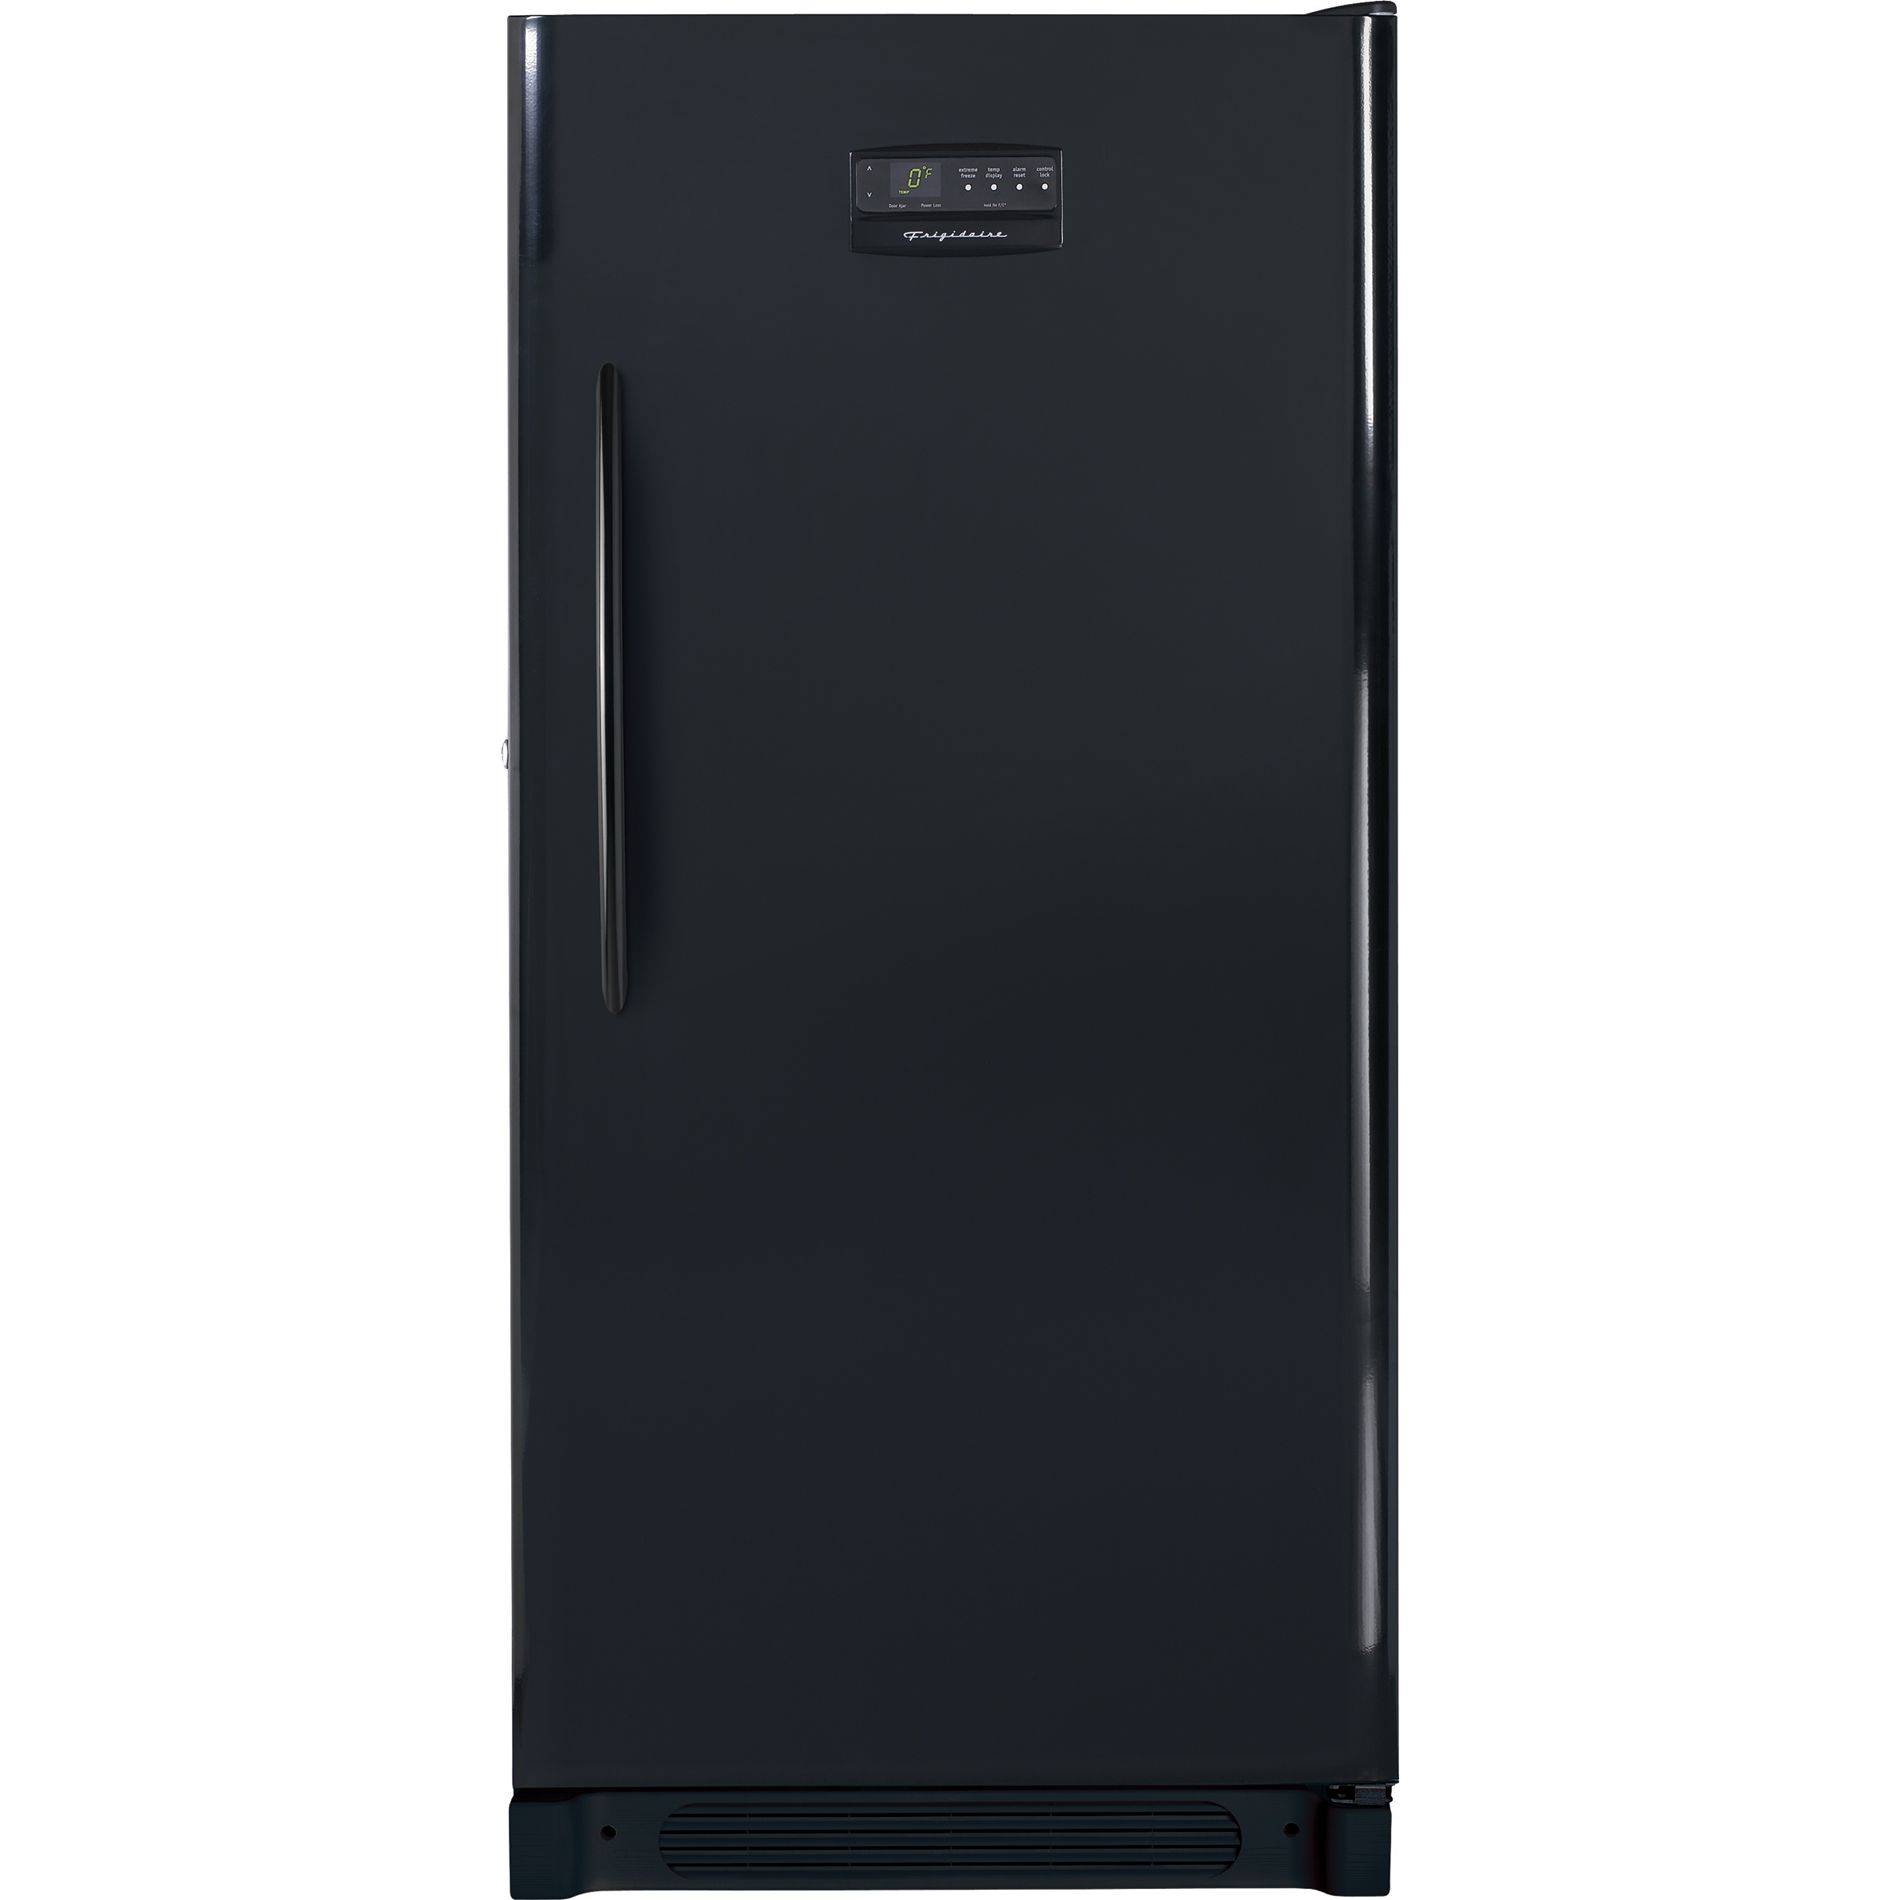 Frigidaire Upright Freezer 13.7 Cu. Ft. Ffu14f7hb - Sears